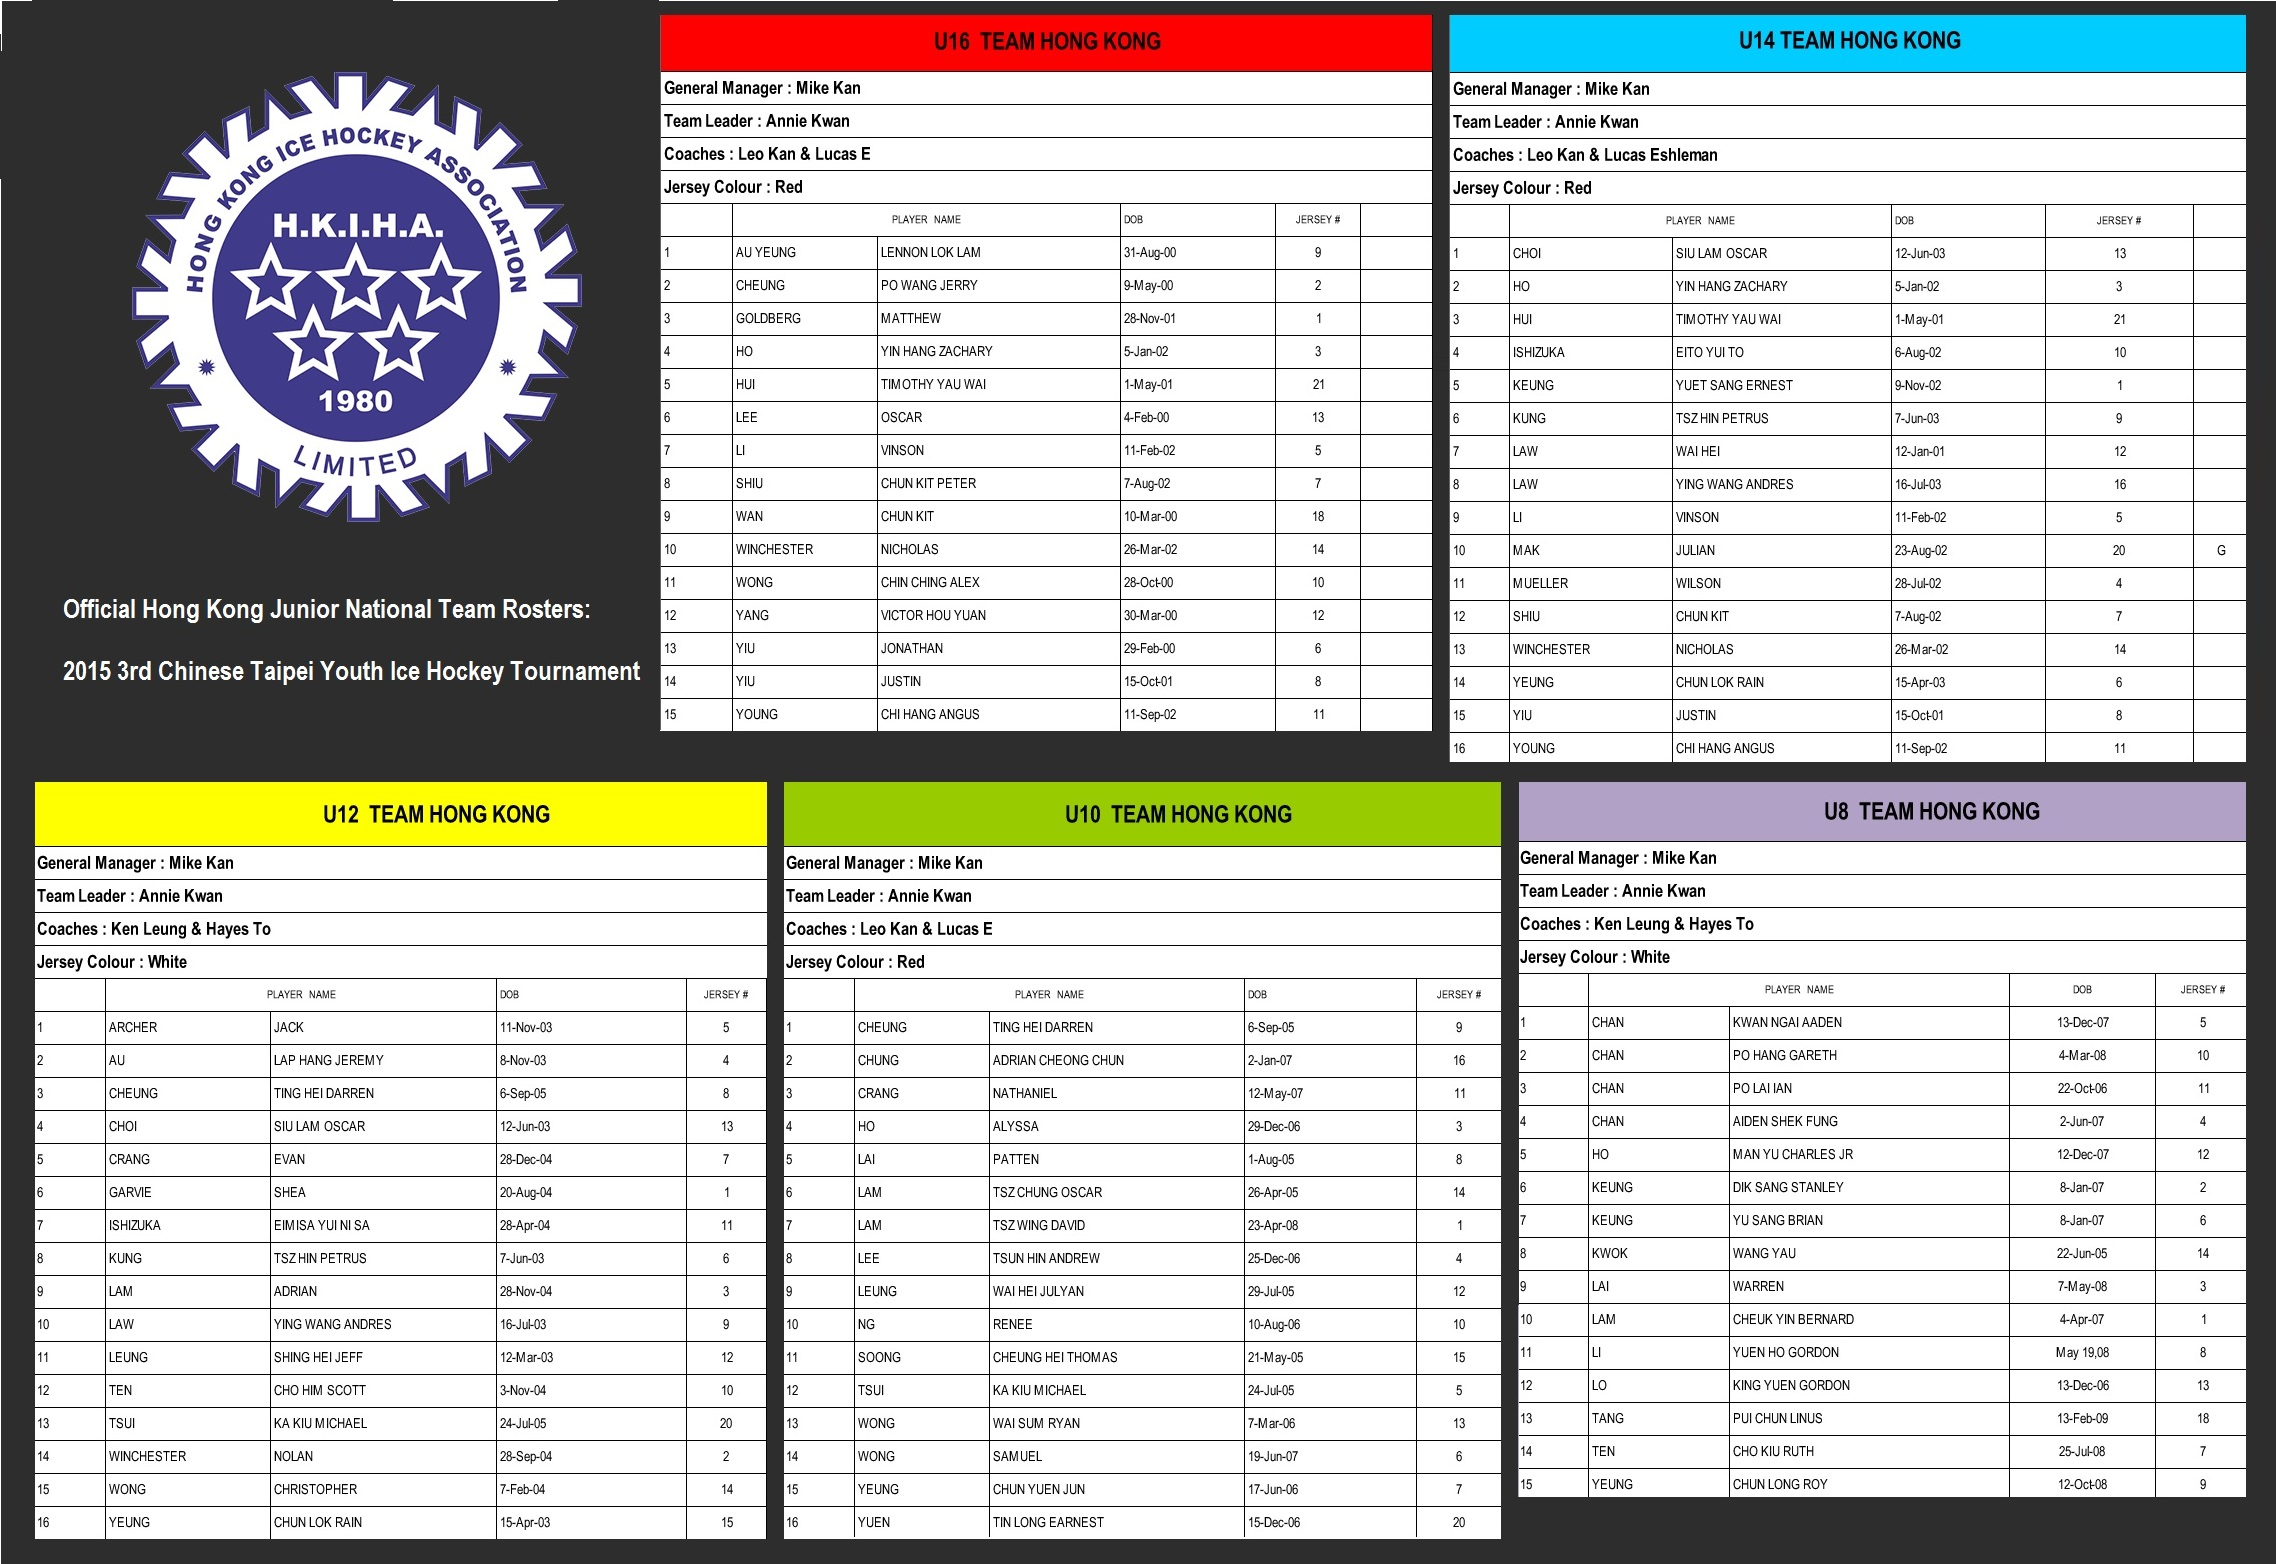 Team Rosters